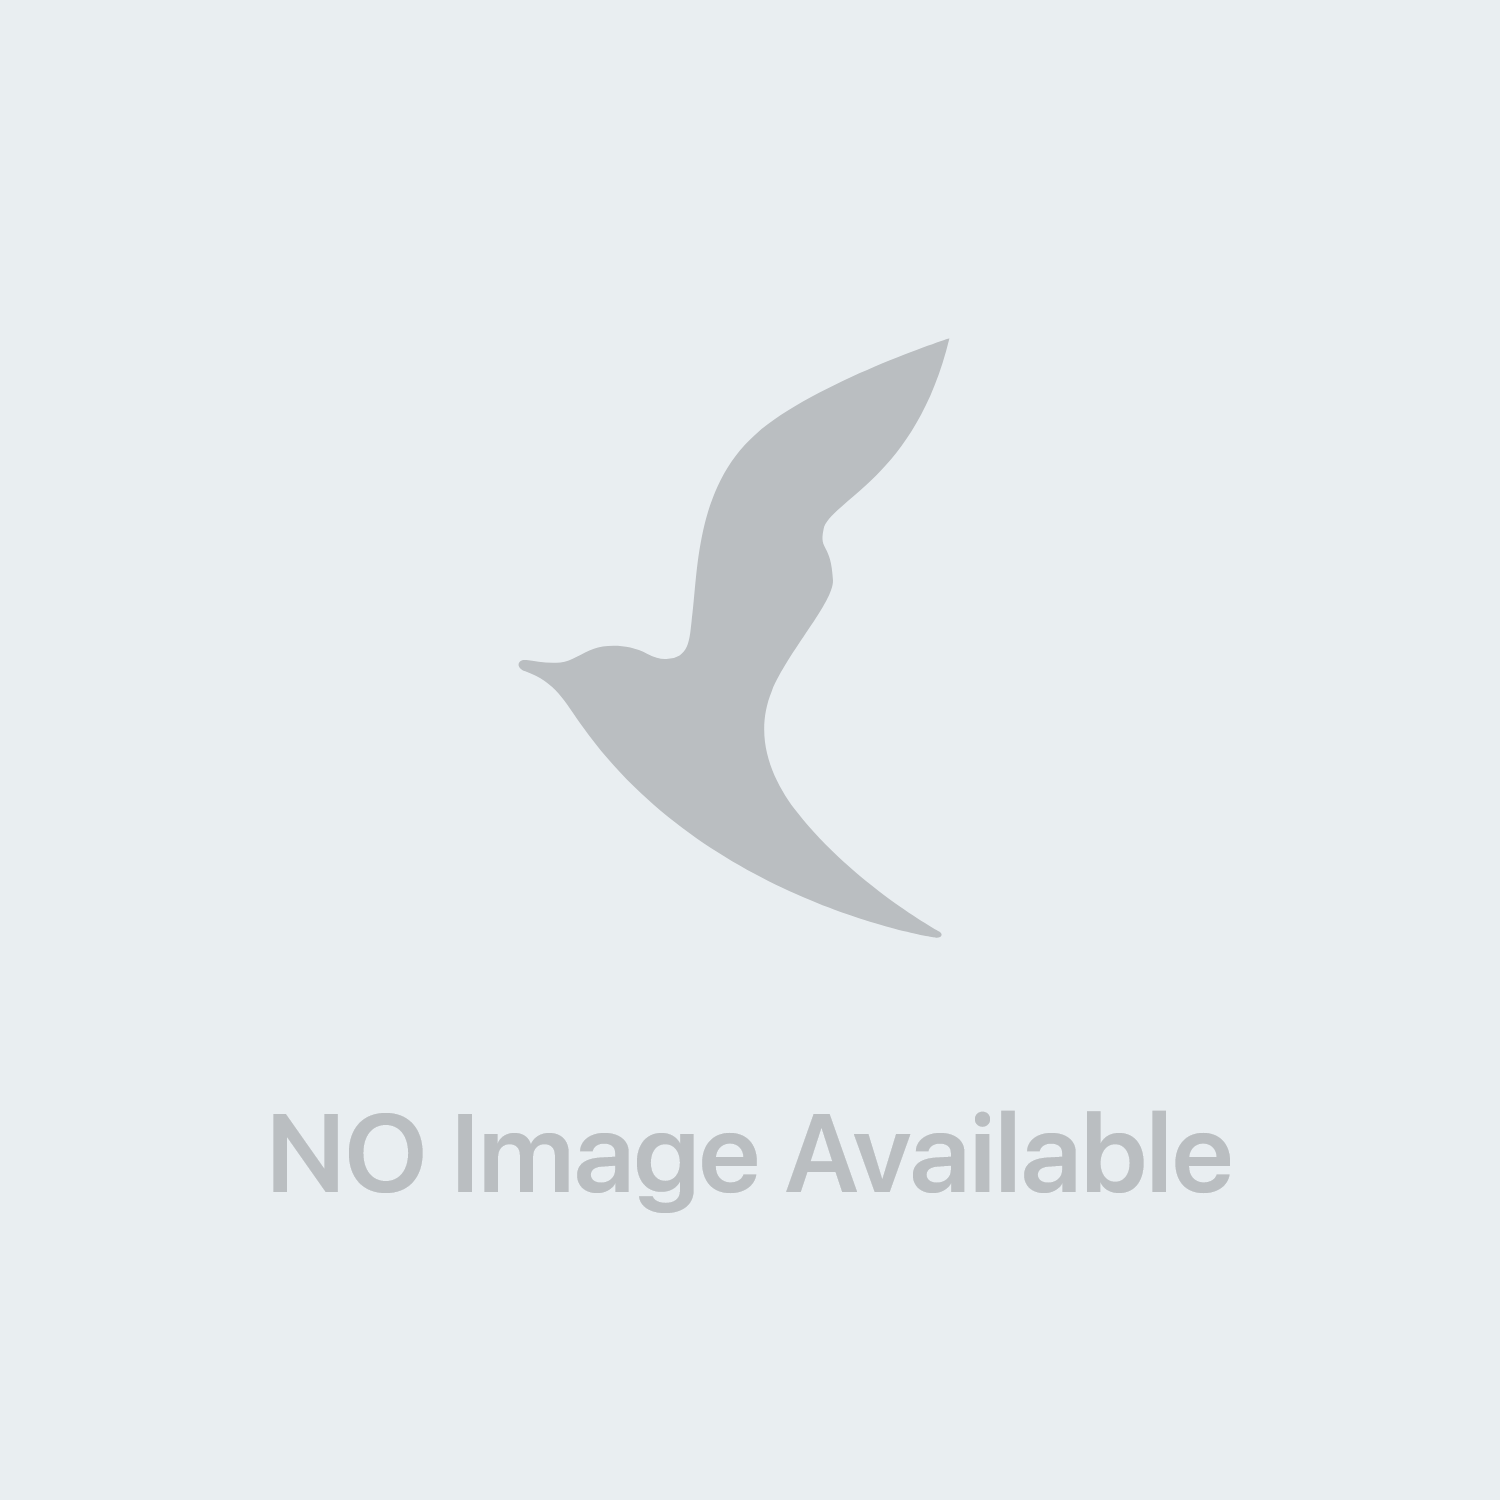 Natural Point B9 400 Integratore Energetico 70 Capsule